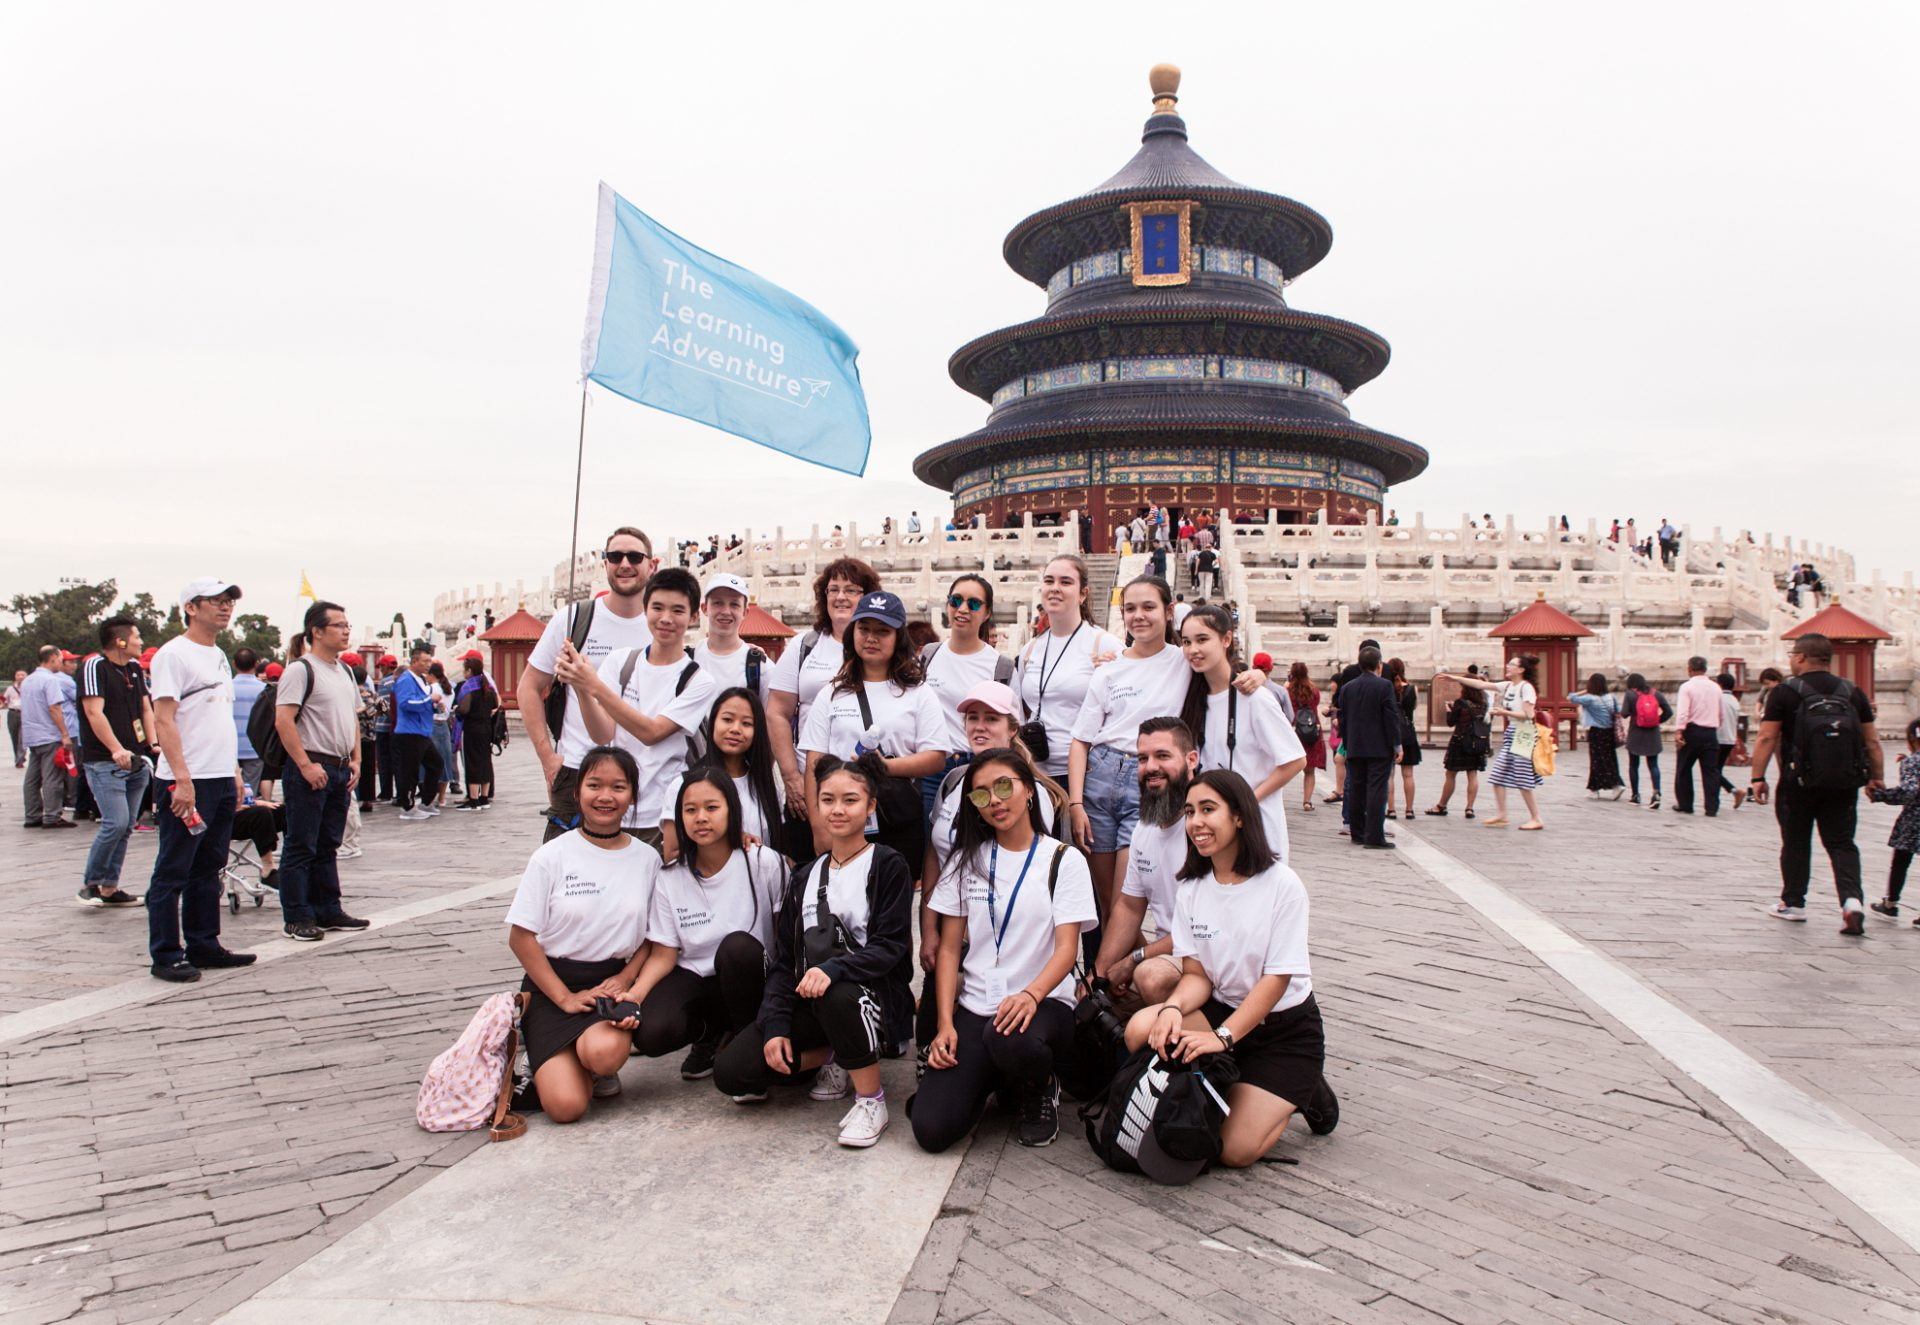 environmental science educational tour to beijing